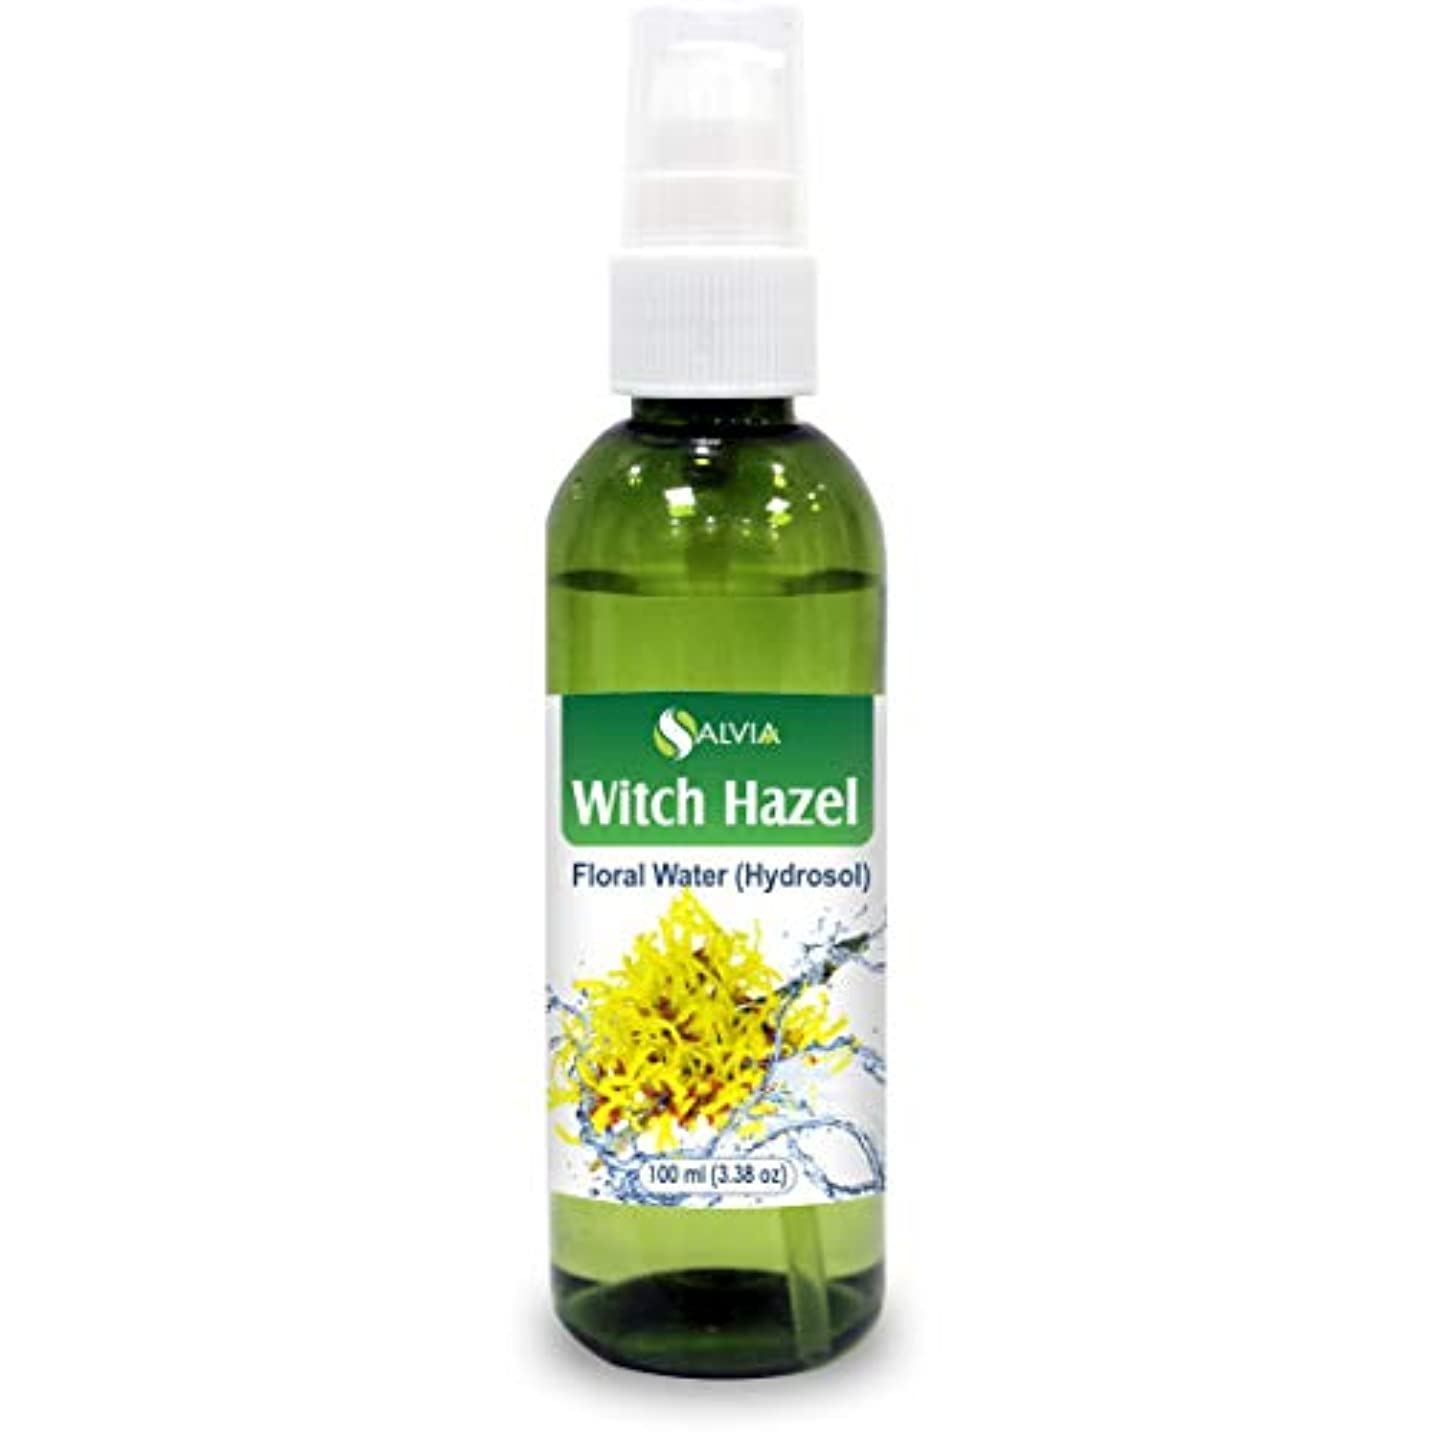 Witch Hazel Floral Water 100ml (Hydrosol) 100% Pure And Natural